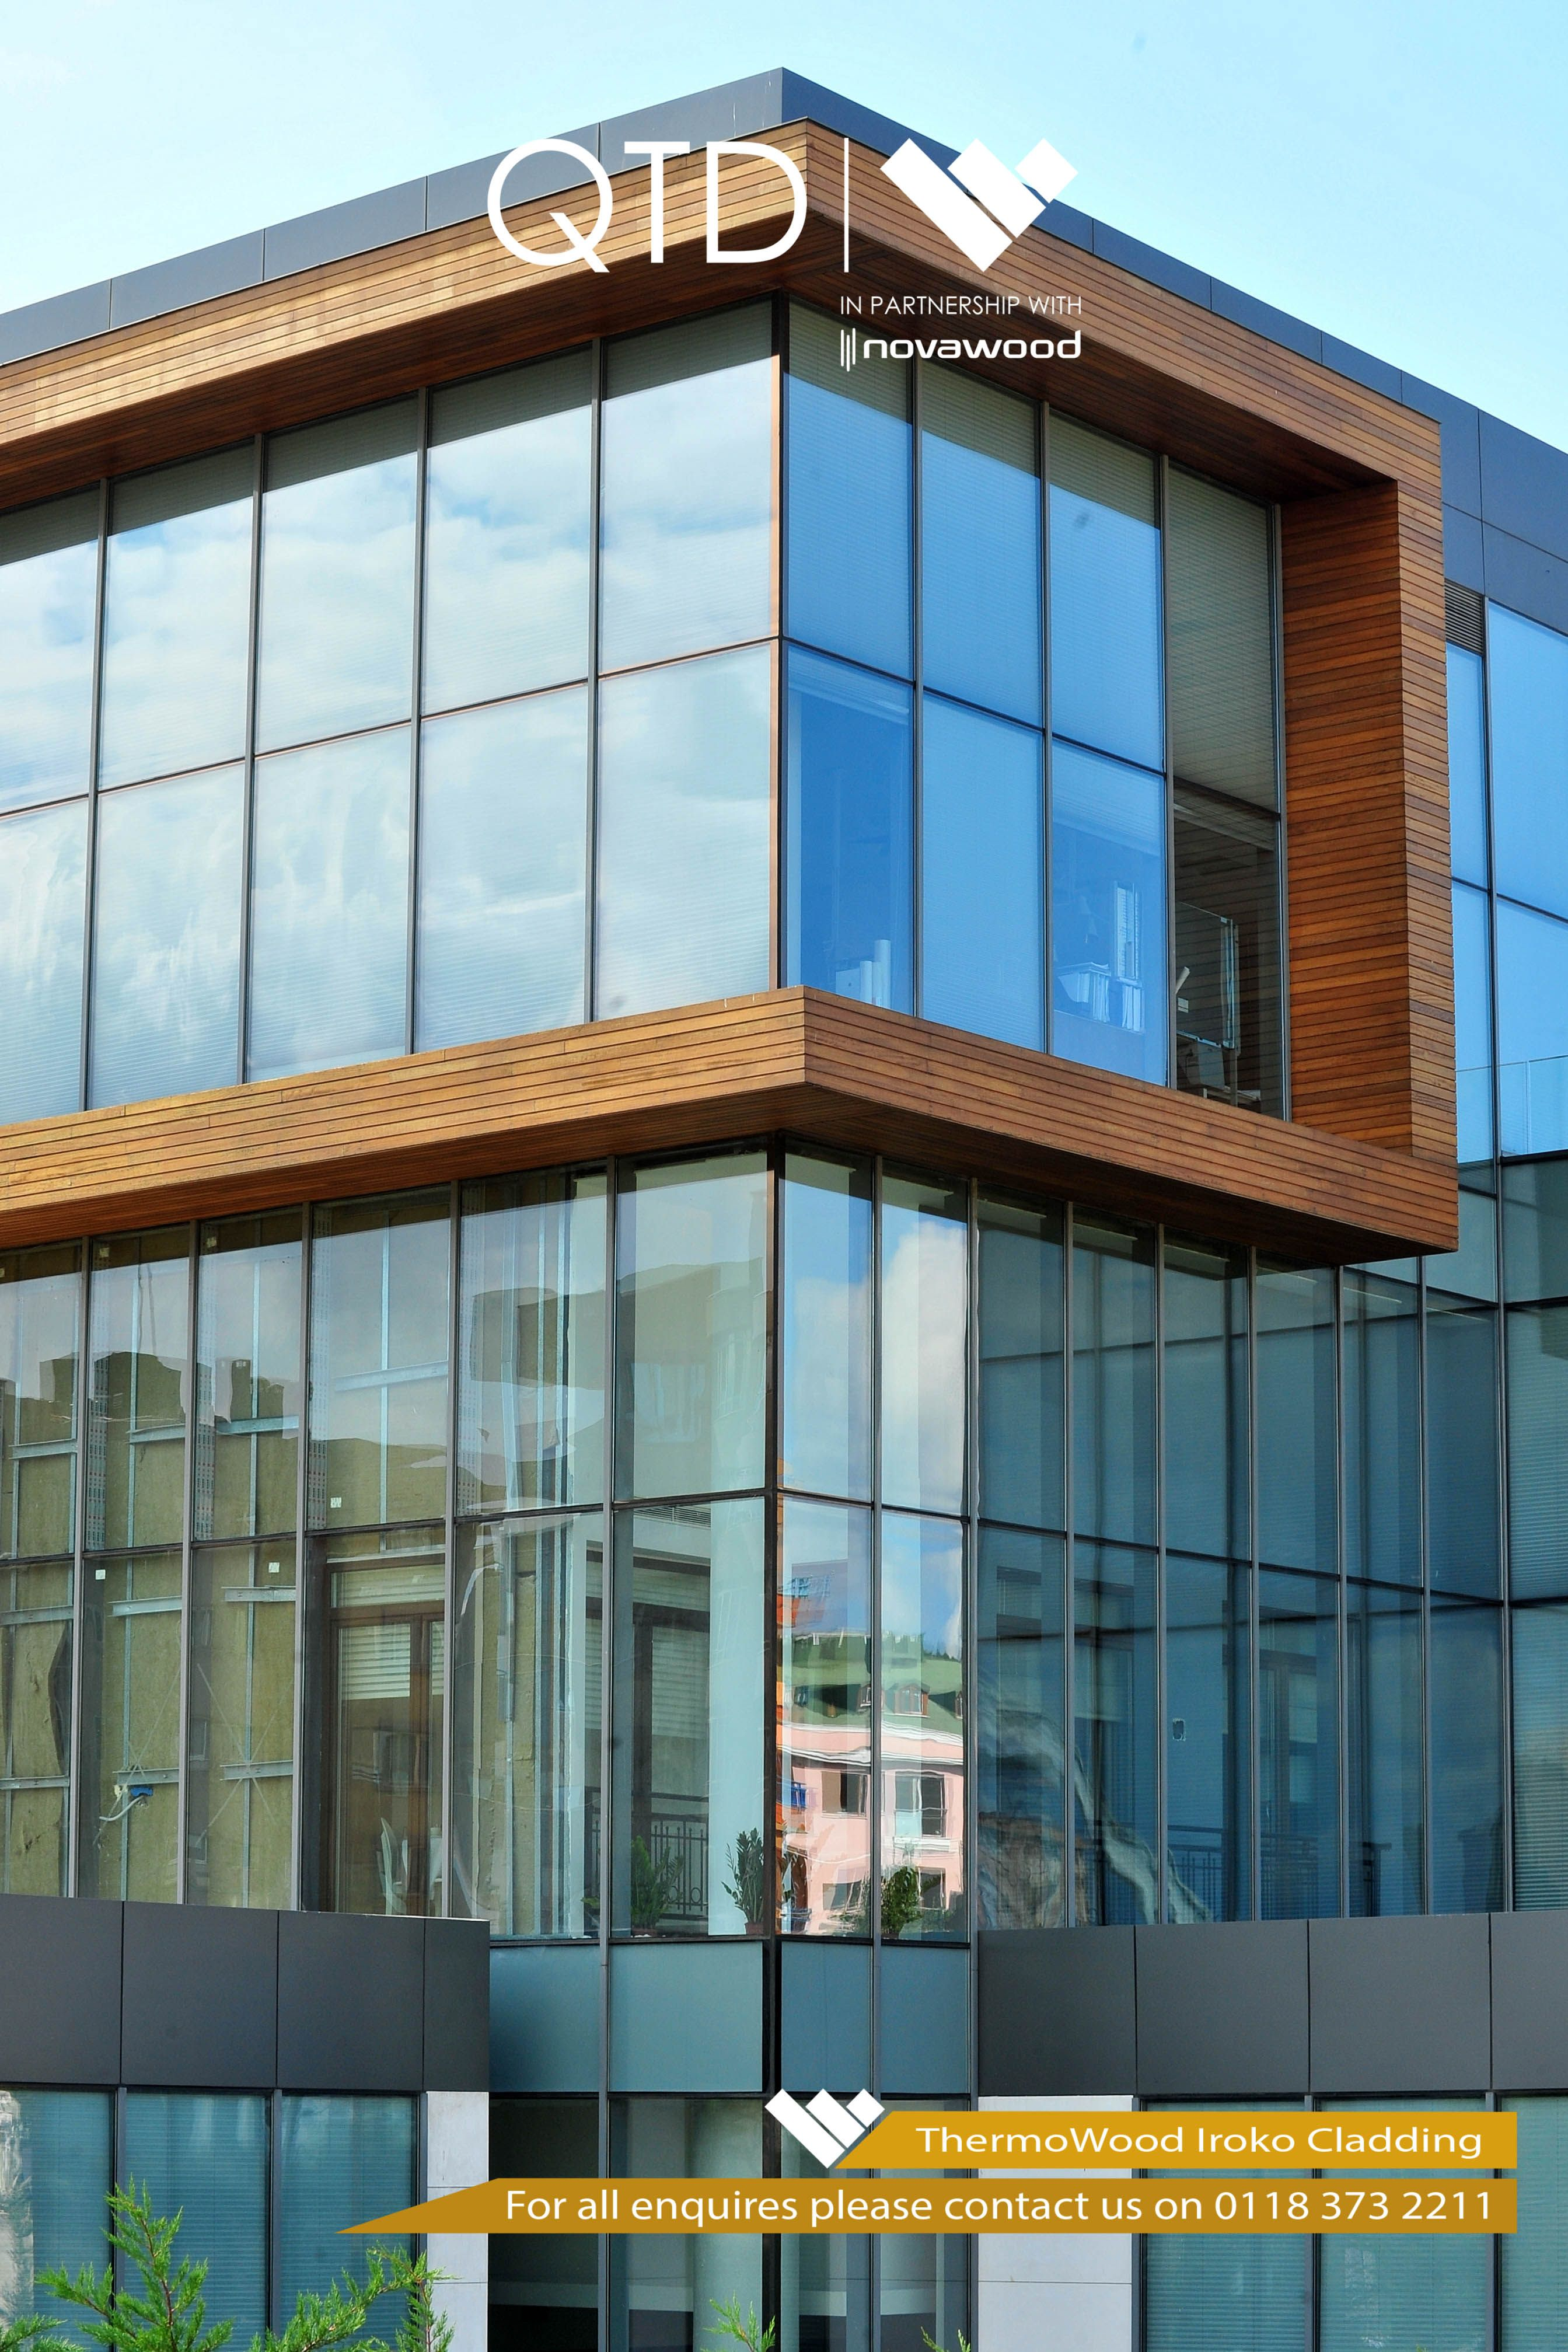 Pin by QTD Ltd on ThermoWood Cladding | Cladding materials, Cladding